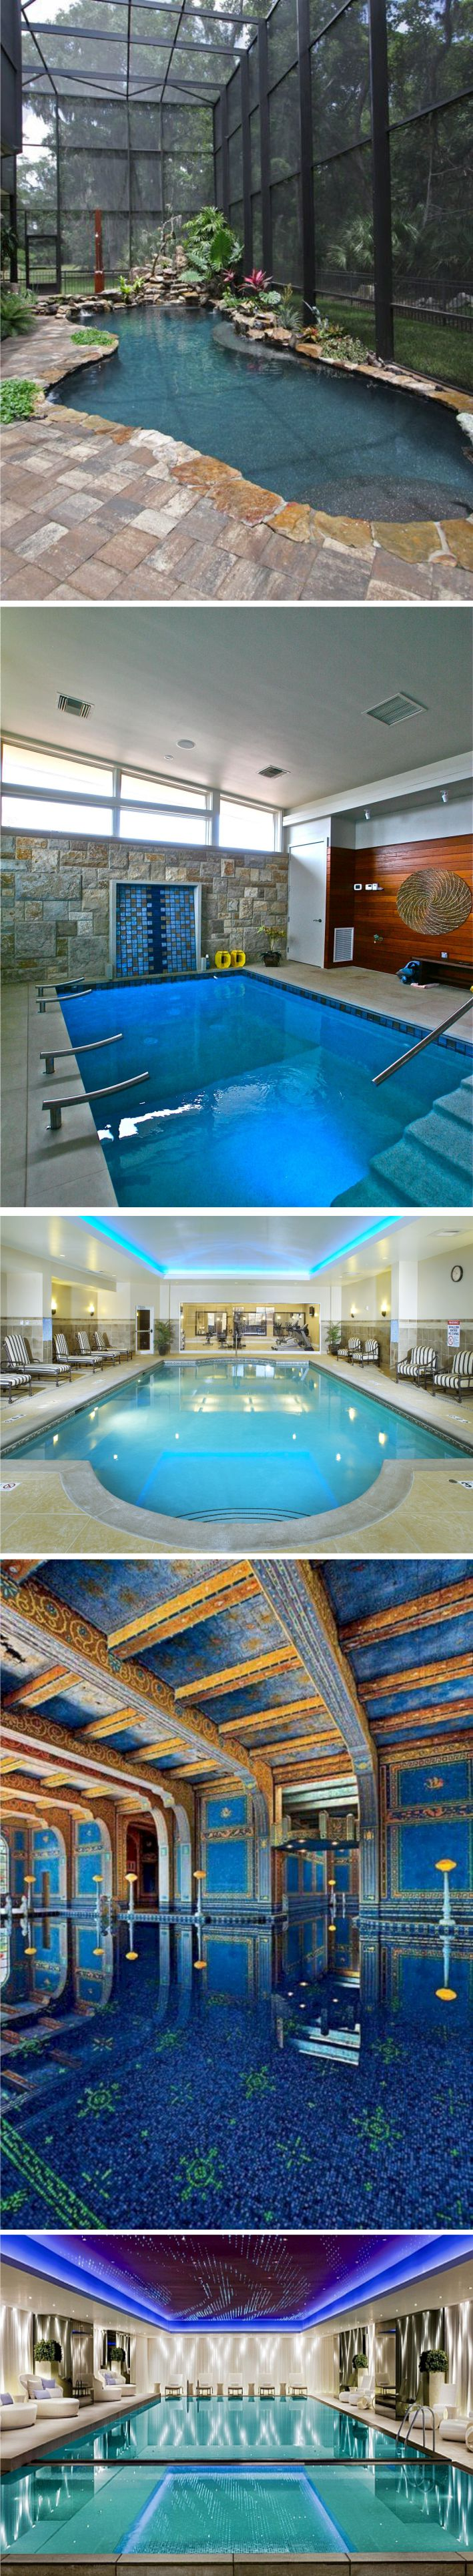 Awesome indoor swimming pool ideas 2018